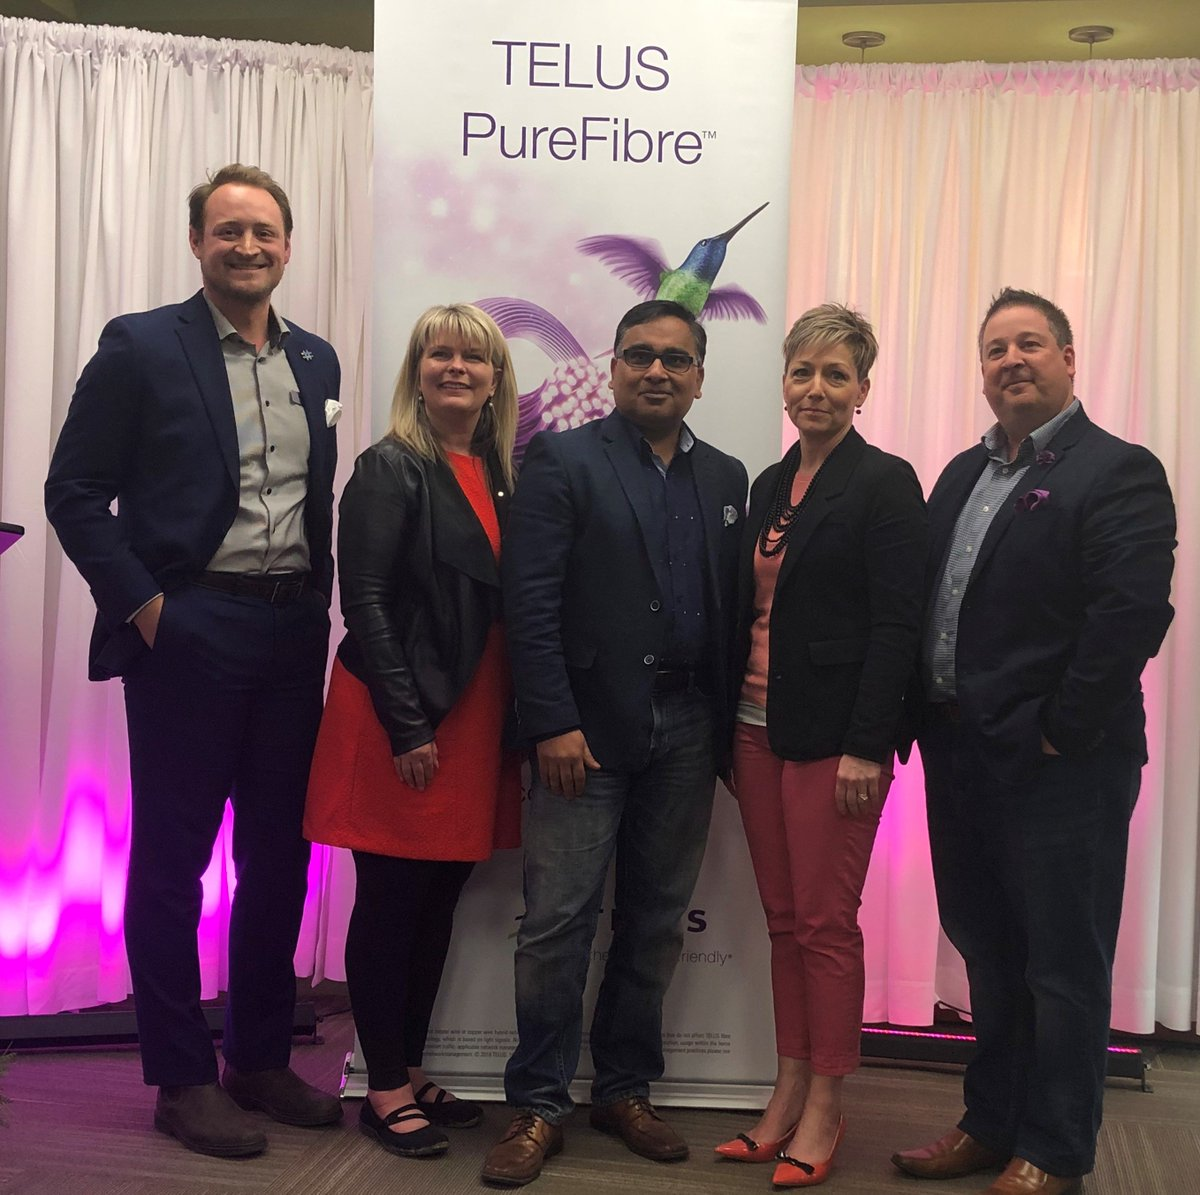 I'm very pleased with Telus' announcement to invest in Sturgeon County & St. Albert improving the broadband network